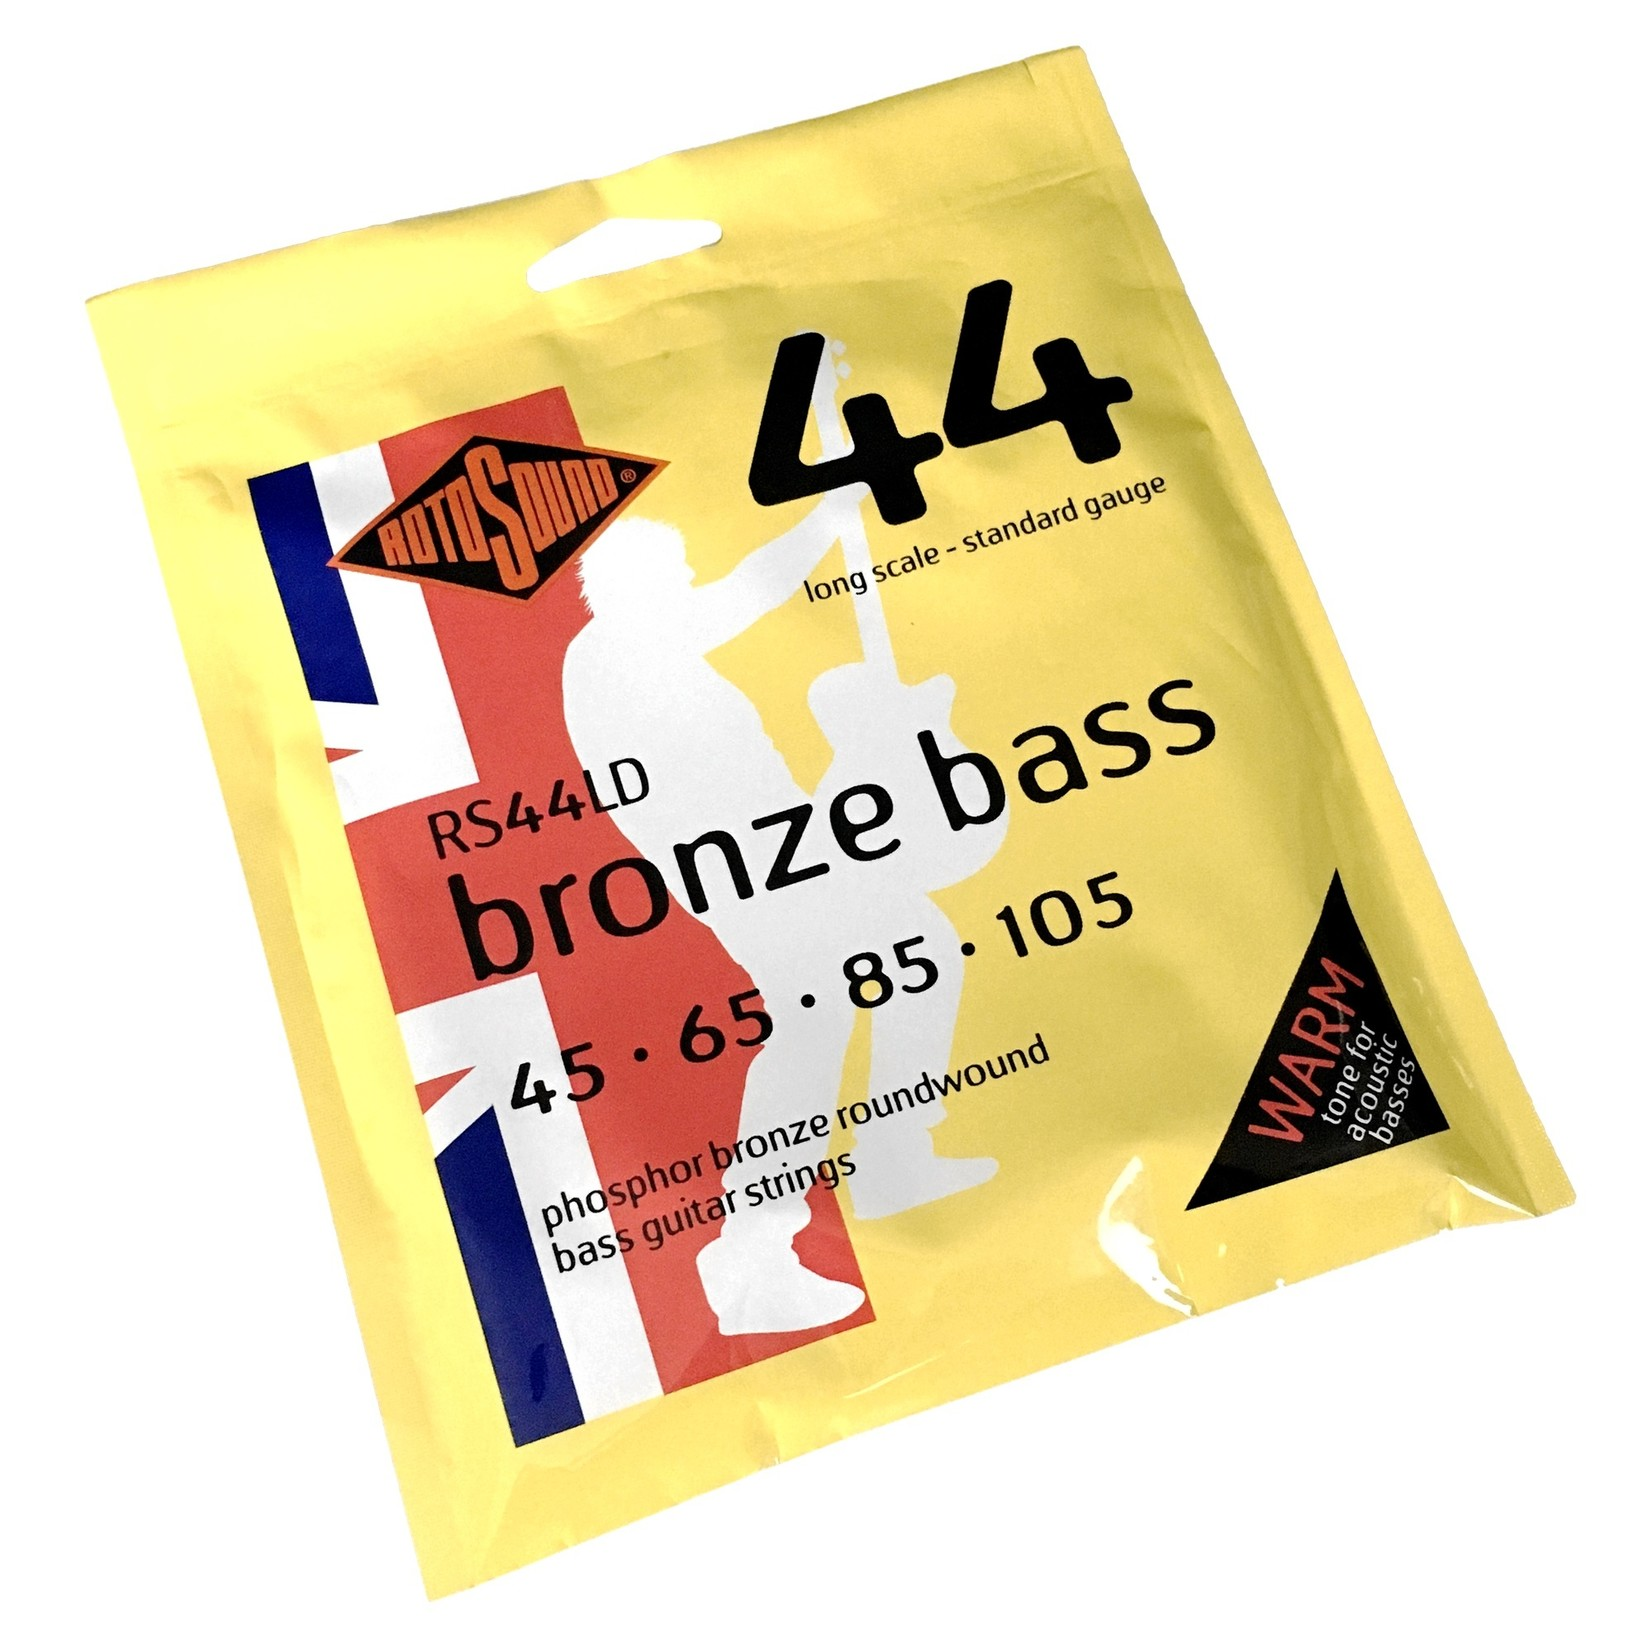 Rotosound Rotosound RS44LD 44 Bronze Bass, Phosphor Bronze Roundwound Bass Guitar Strings (45-105), Acoustic